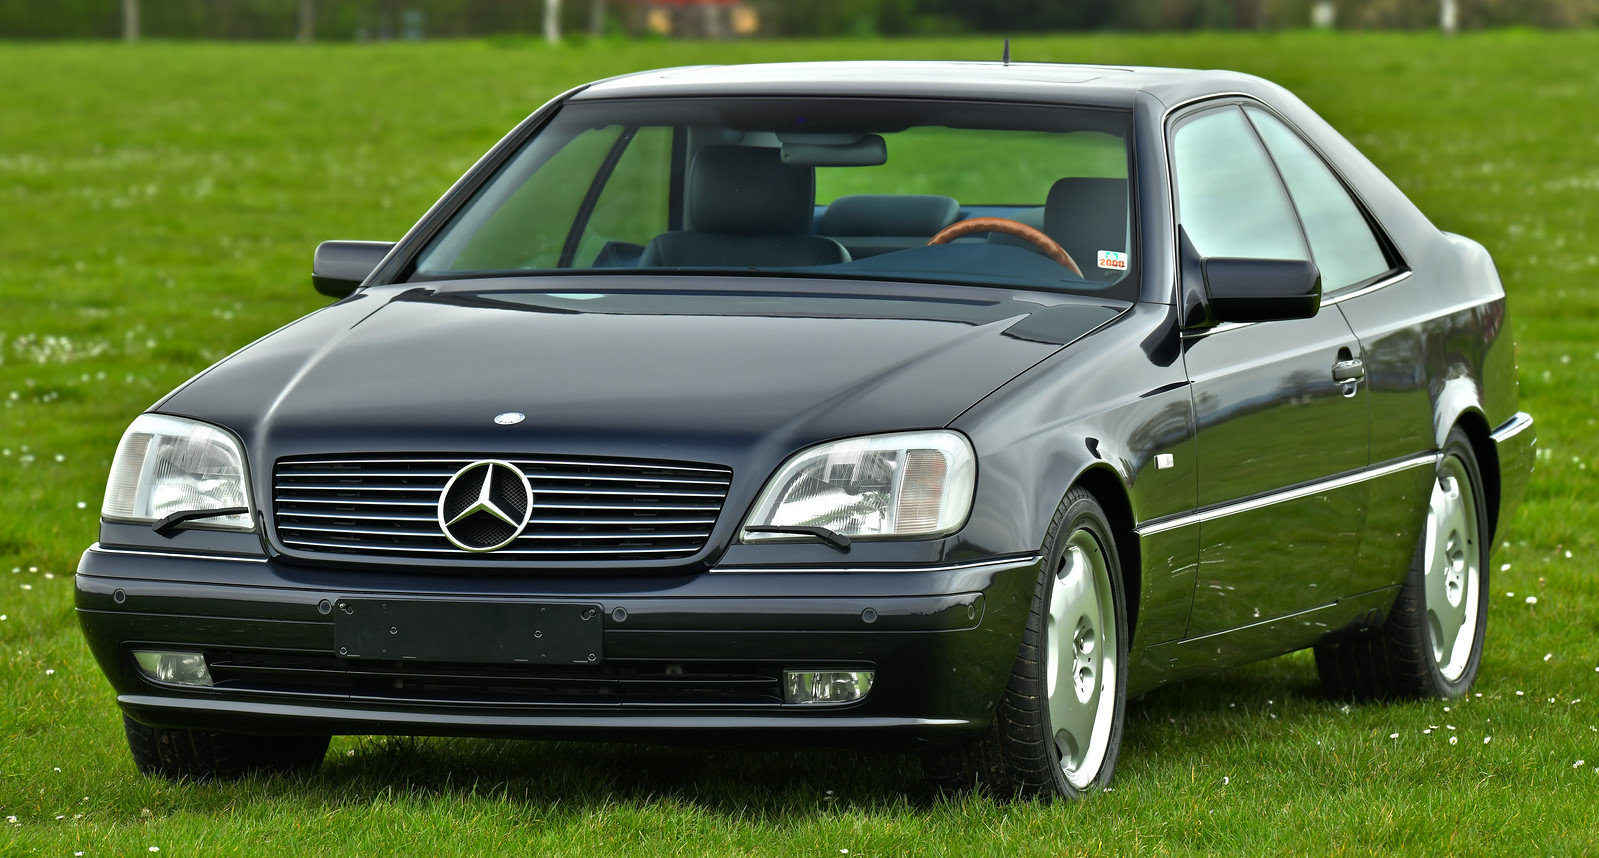 1998 Mercedes-Benz CL500 Sunroof Coupé For Sale (picture 1 of 6)